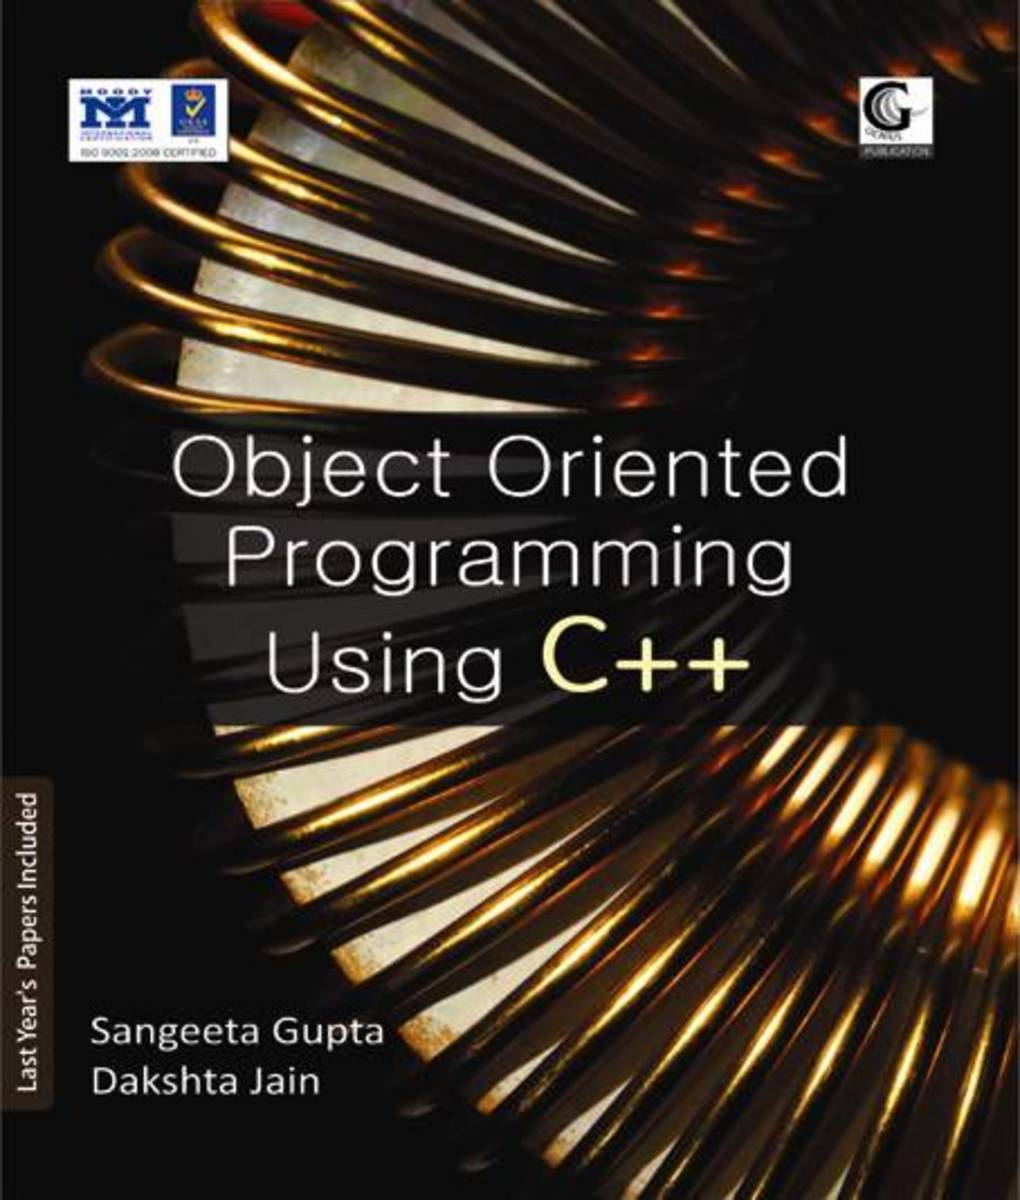 Object Oriented Programming Using C++ Book for ME